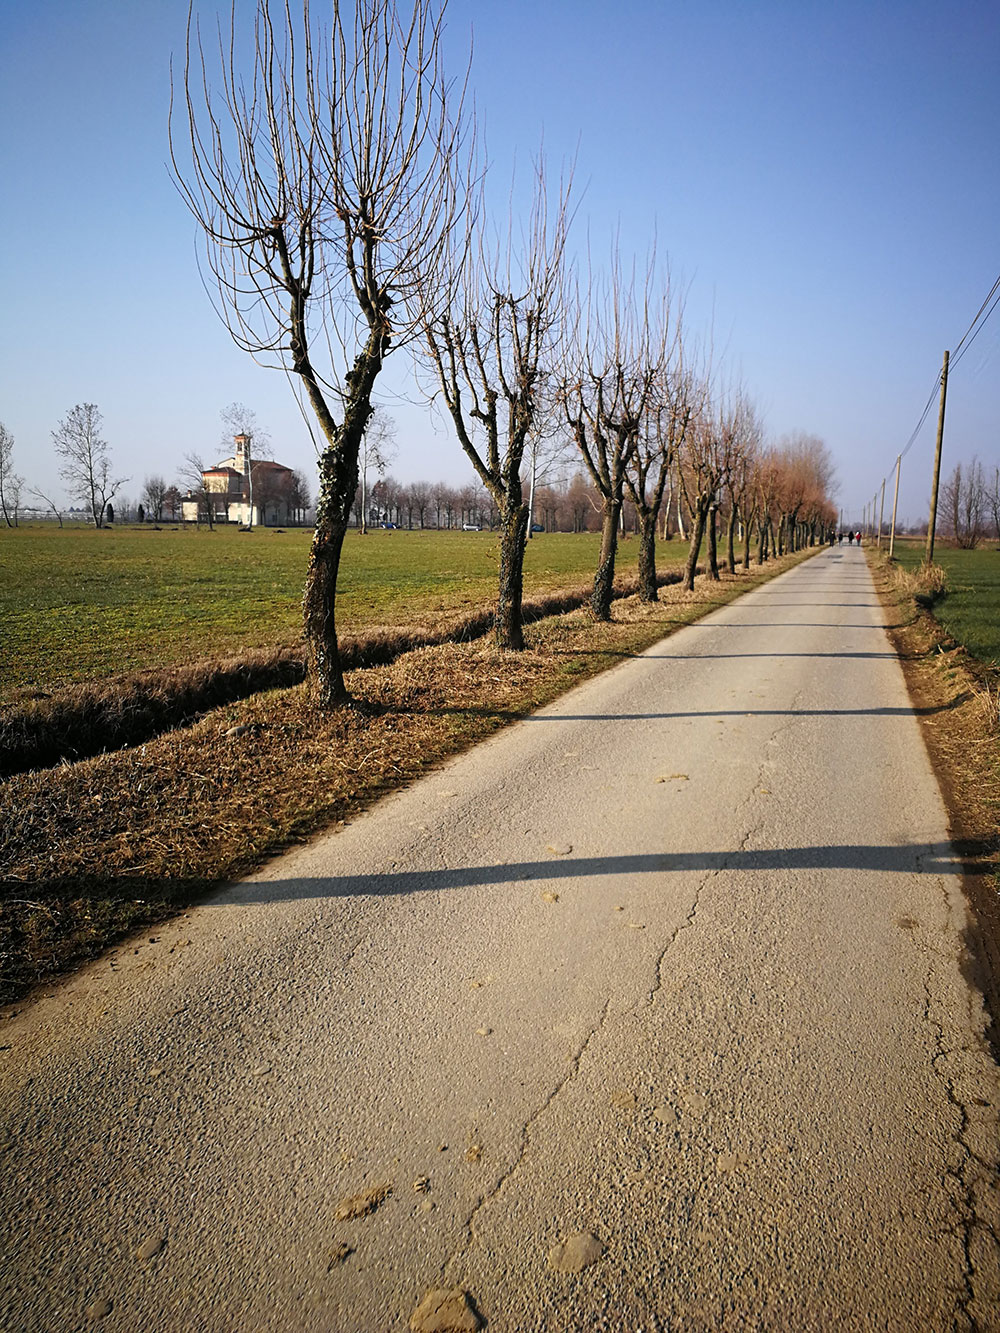 strade secondarie in bici